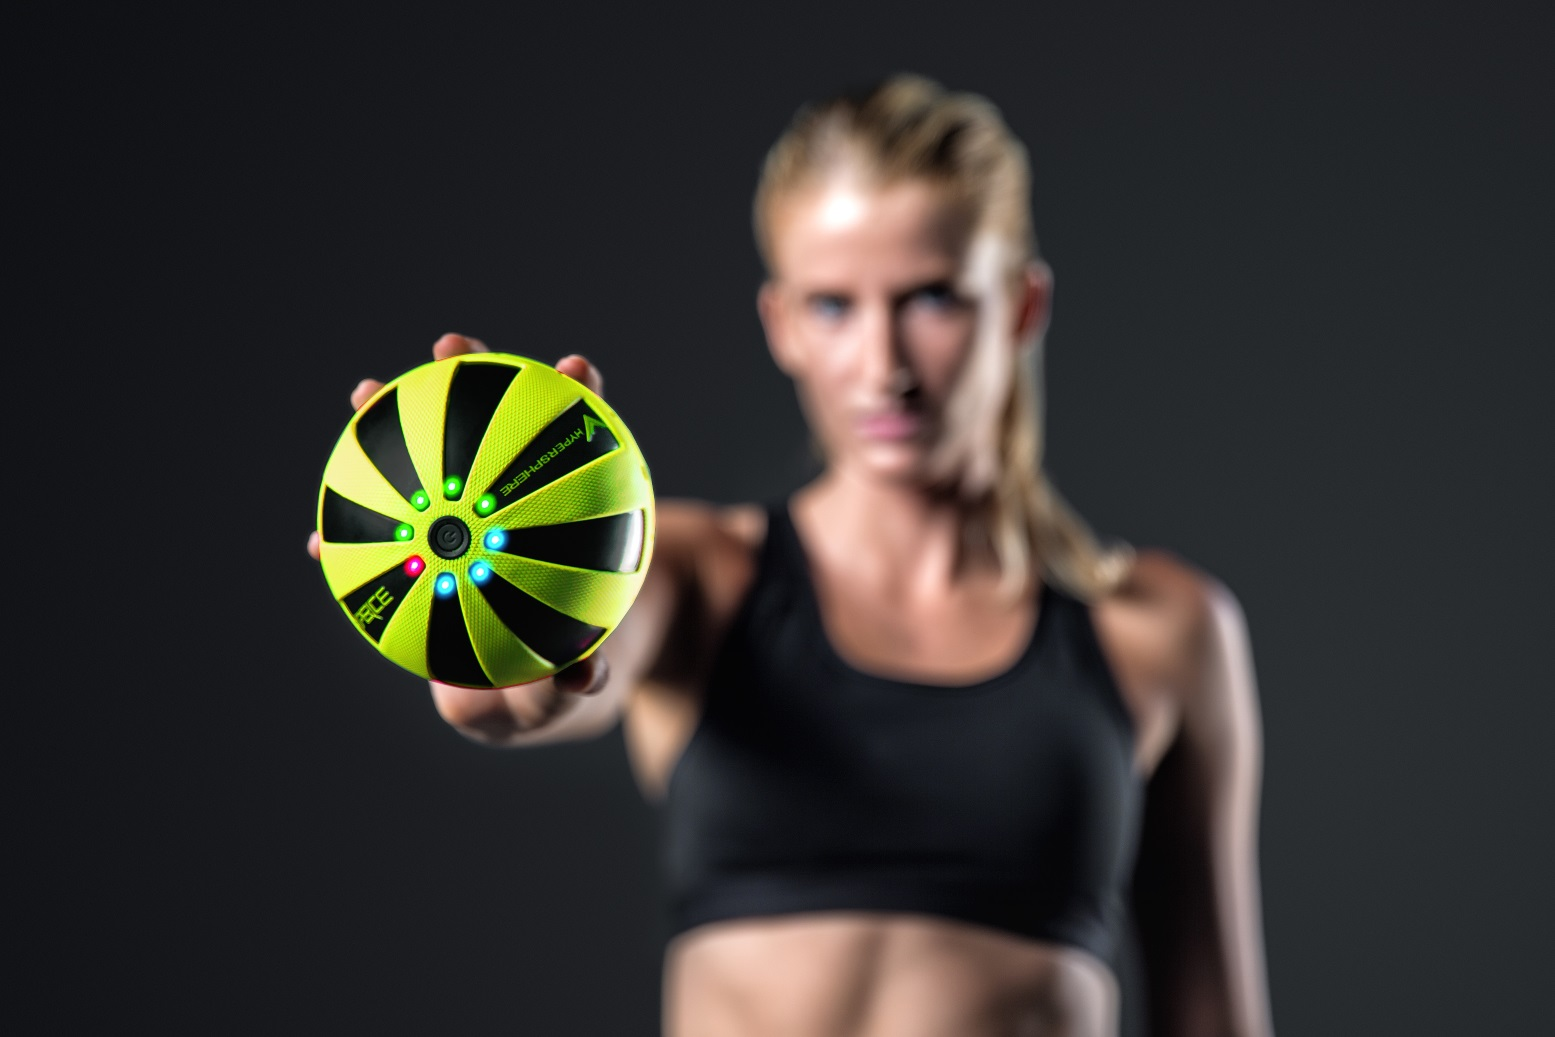 Female Holding Hypersphere Vibrating Ball